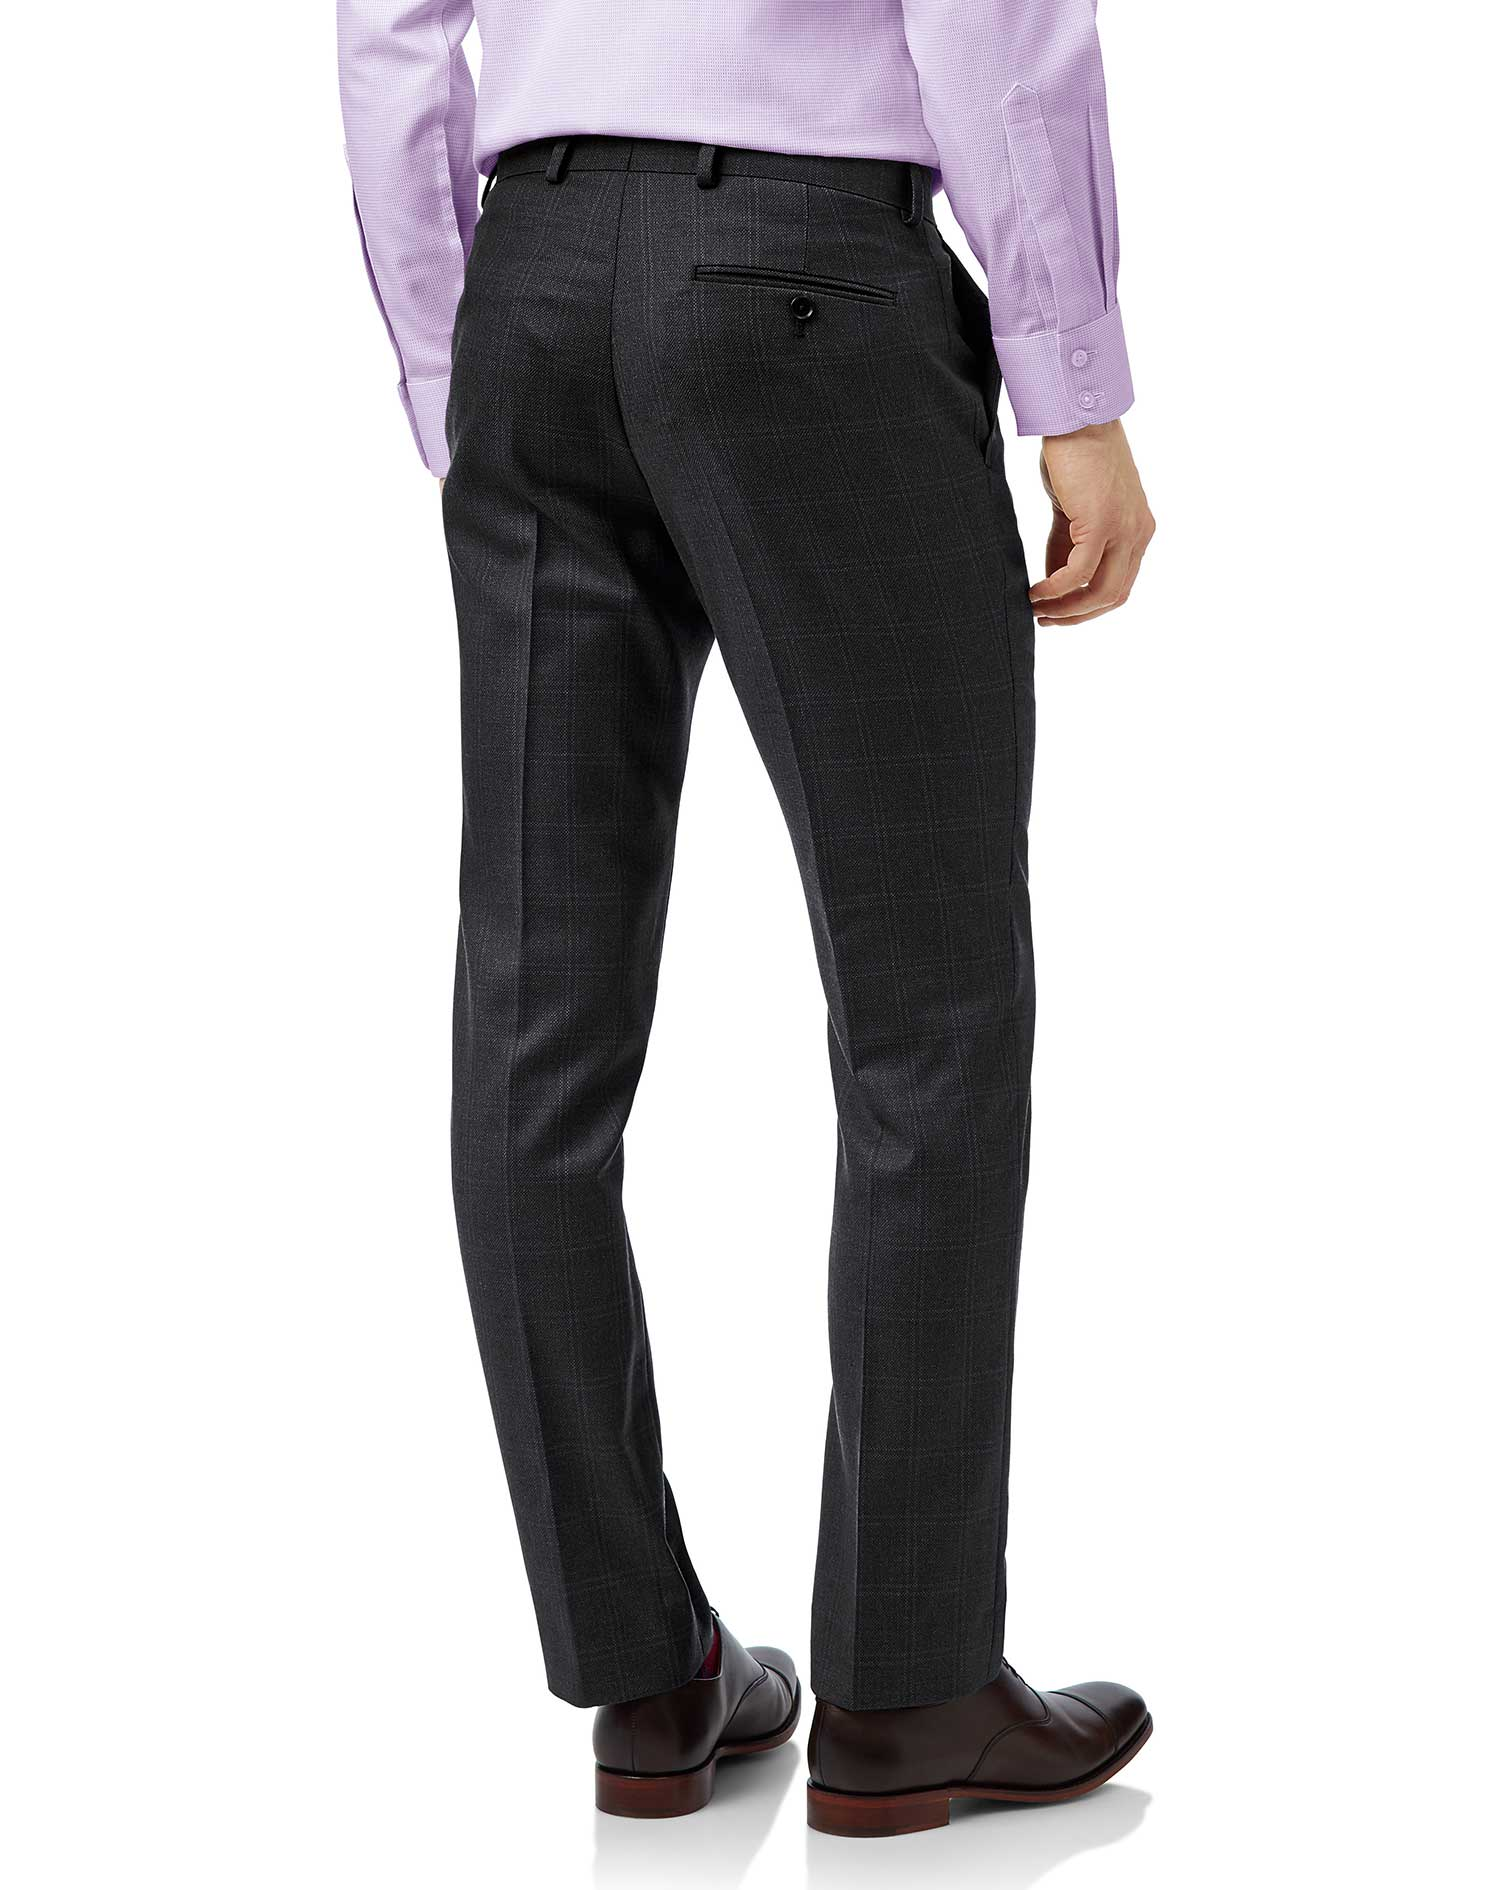 Grey slim fit birdseye travel suit trousers